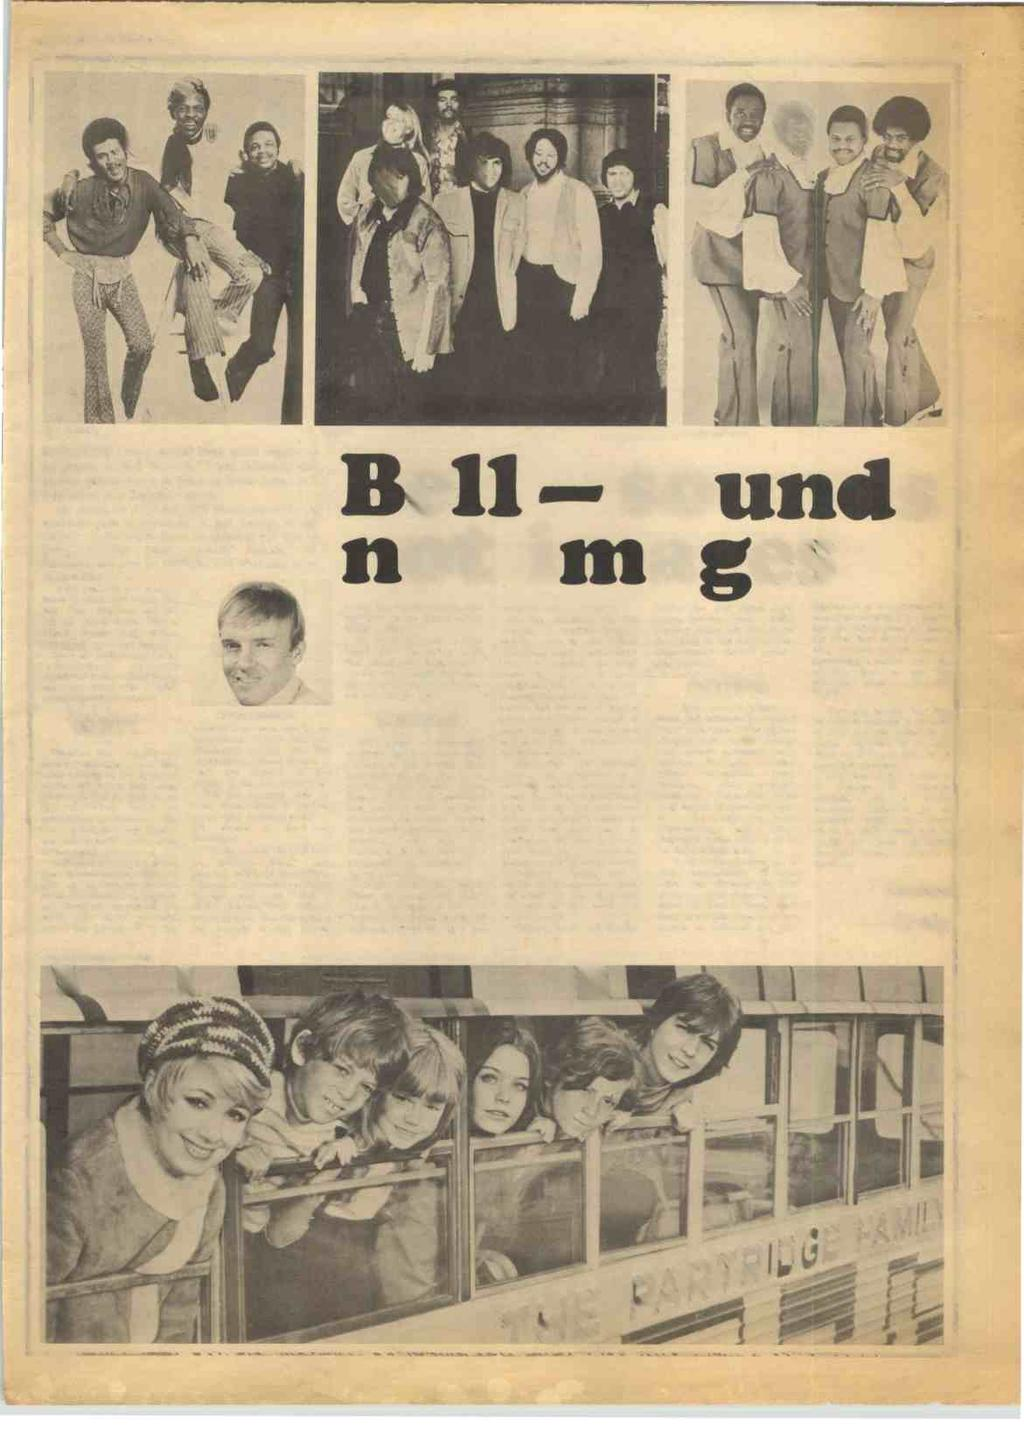 RECORD MIRROR, May 15, 1971 21 DEL FON ICS BARONESS Orczy would have good reason to be proud of Bell Records' Chris Denning; this elusive gentleman is as hard to track down as a free ticket to a